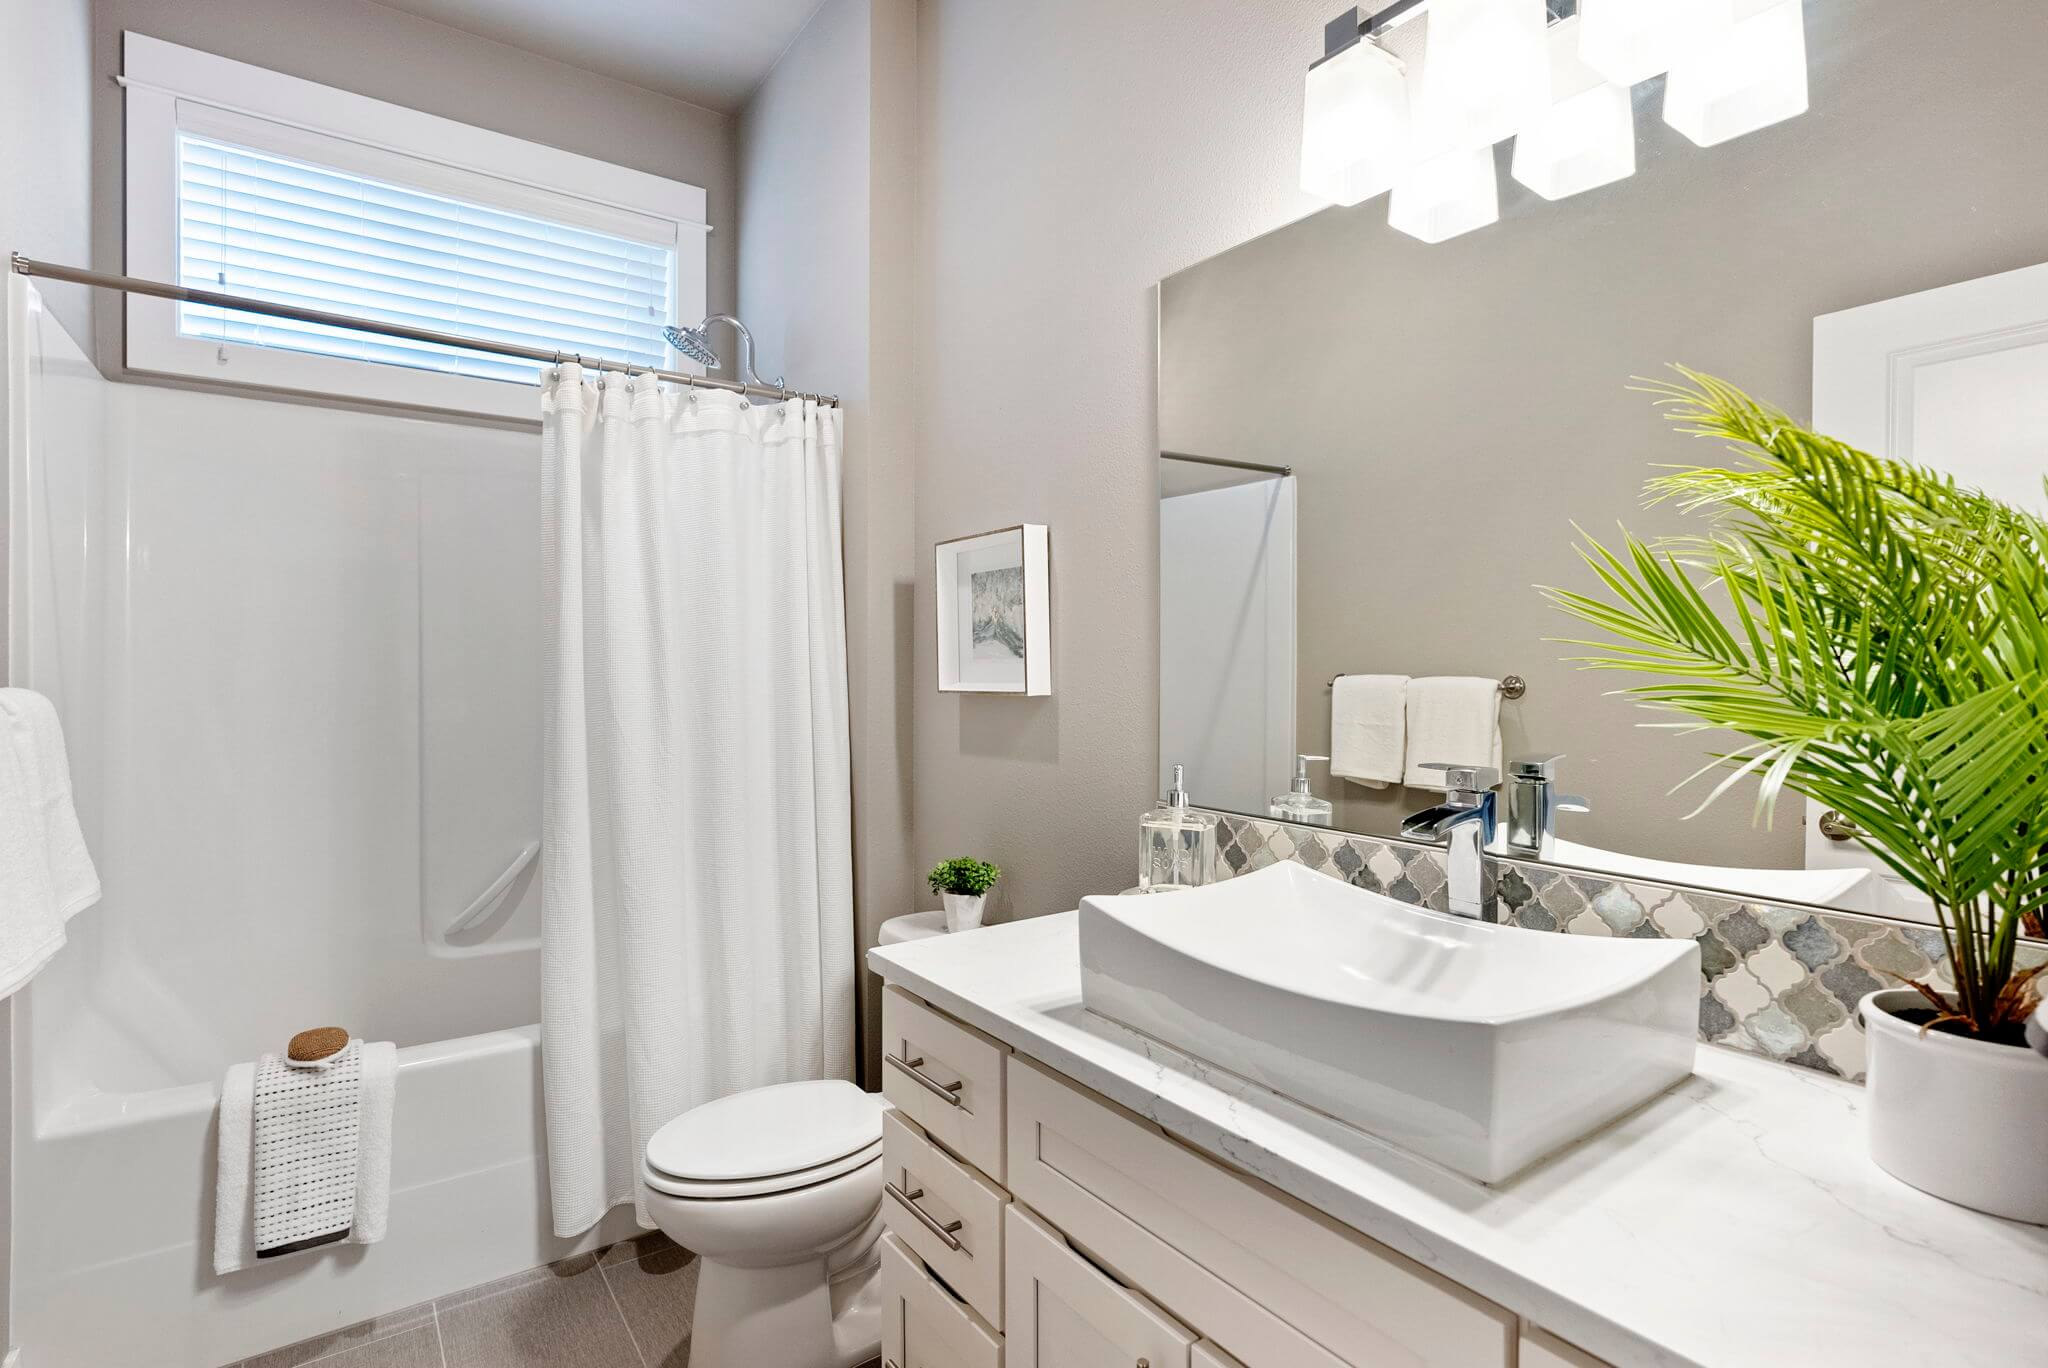 Main floor bathroom with vessel sink and tub/shower